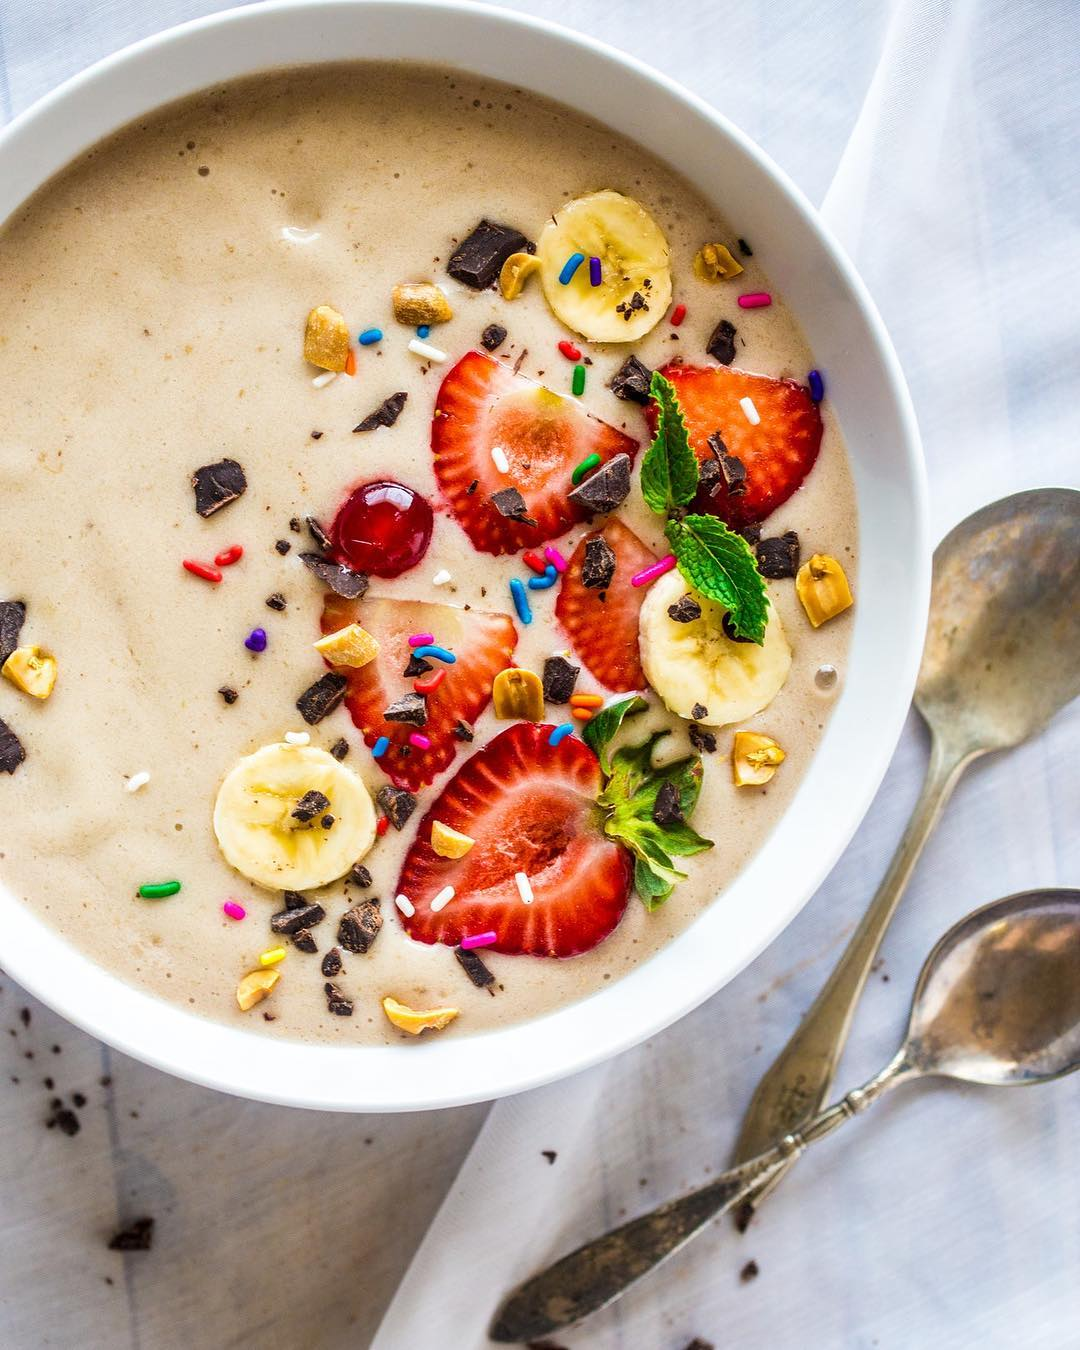 Starting the weekend on an indulgent yet healthy note! Visit our stories to get the recipe  #BetterForYou #Healthy #SmoothieBowl #FreshFruits #PowerSnack #Indulgent #TryItNow #Recipe #RecipesByFoodhall #ForTheLoveOfFood #FoodhallIndia